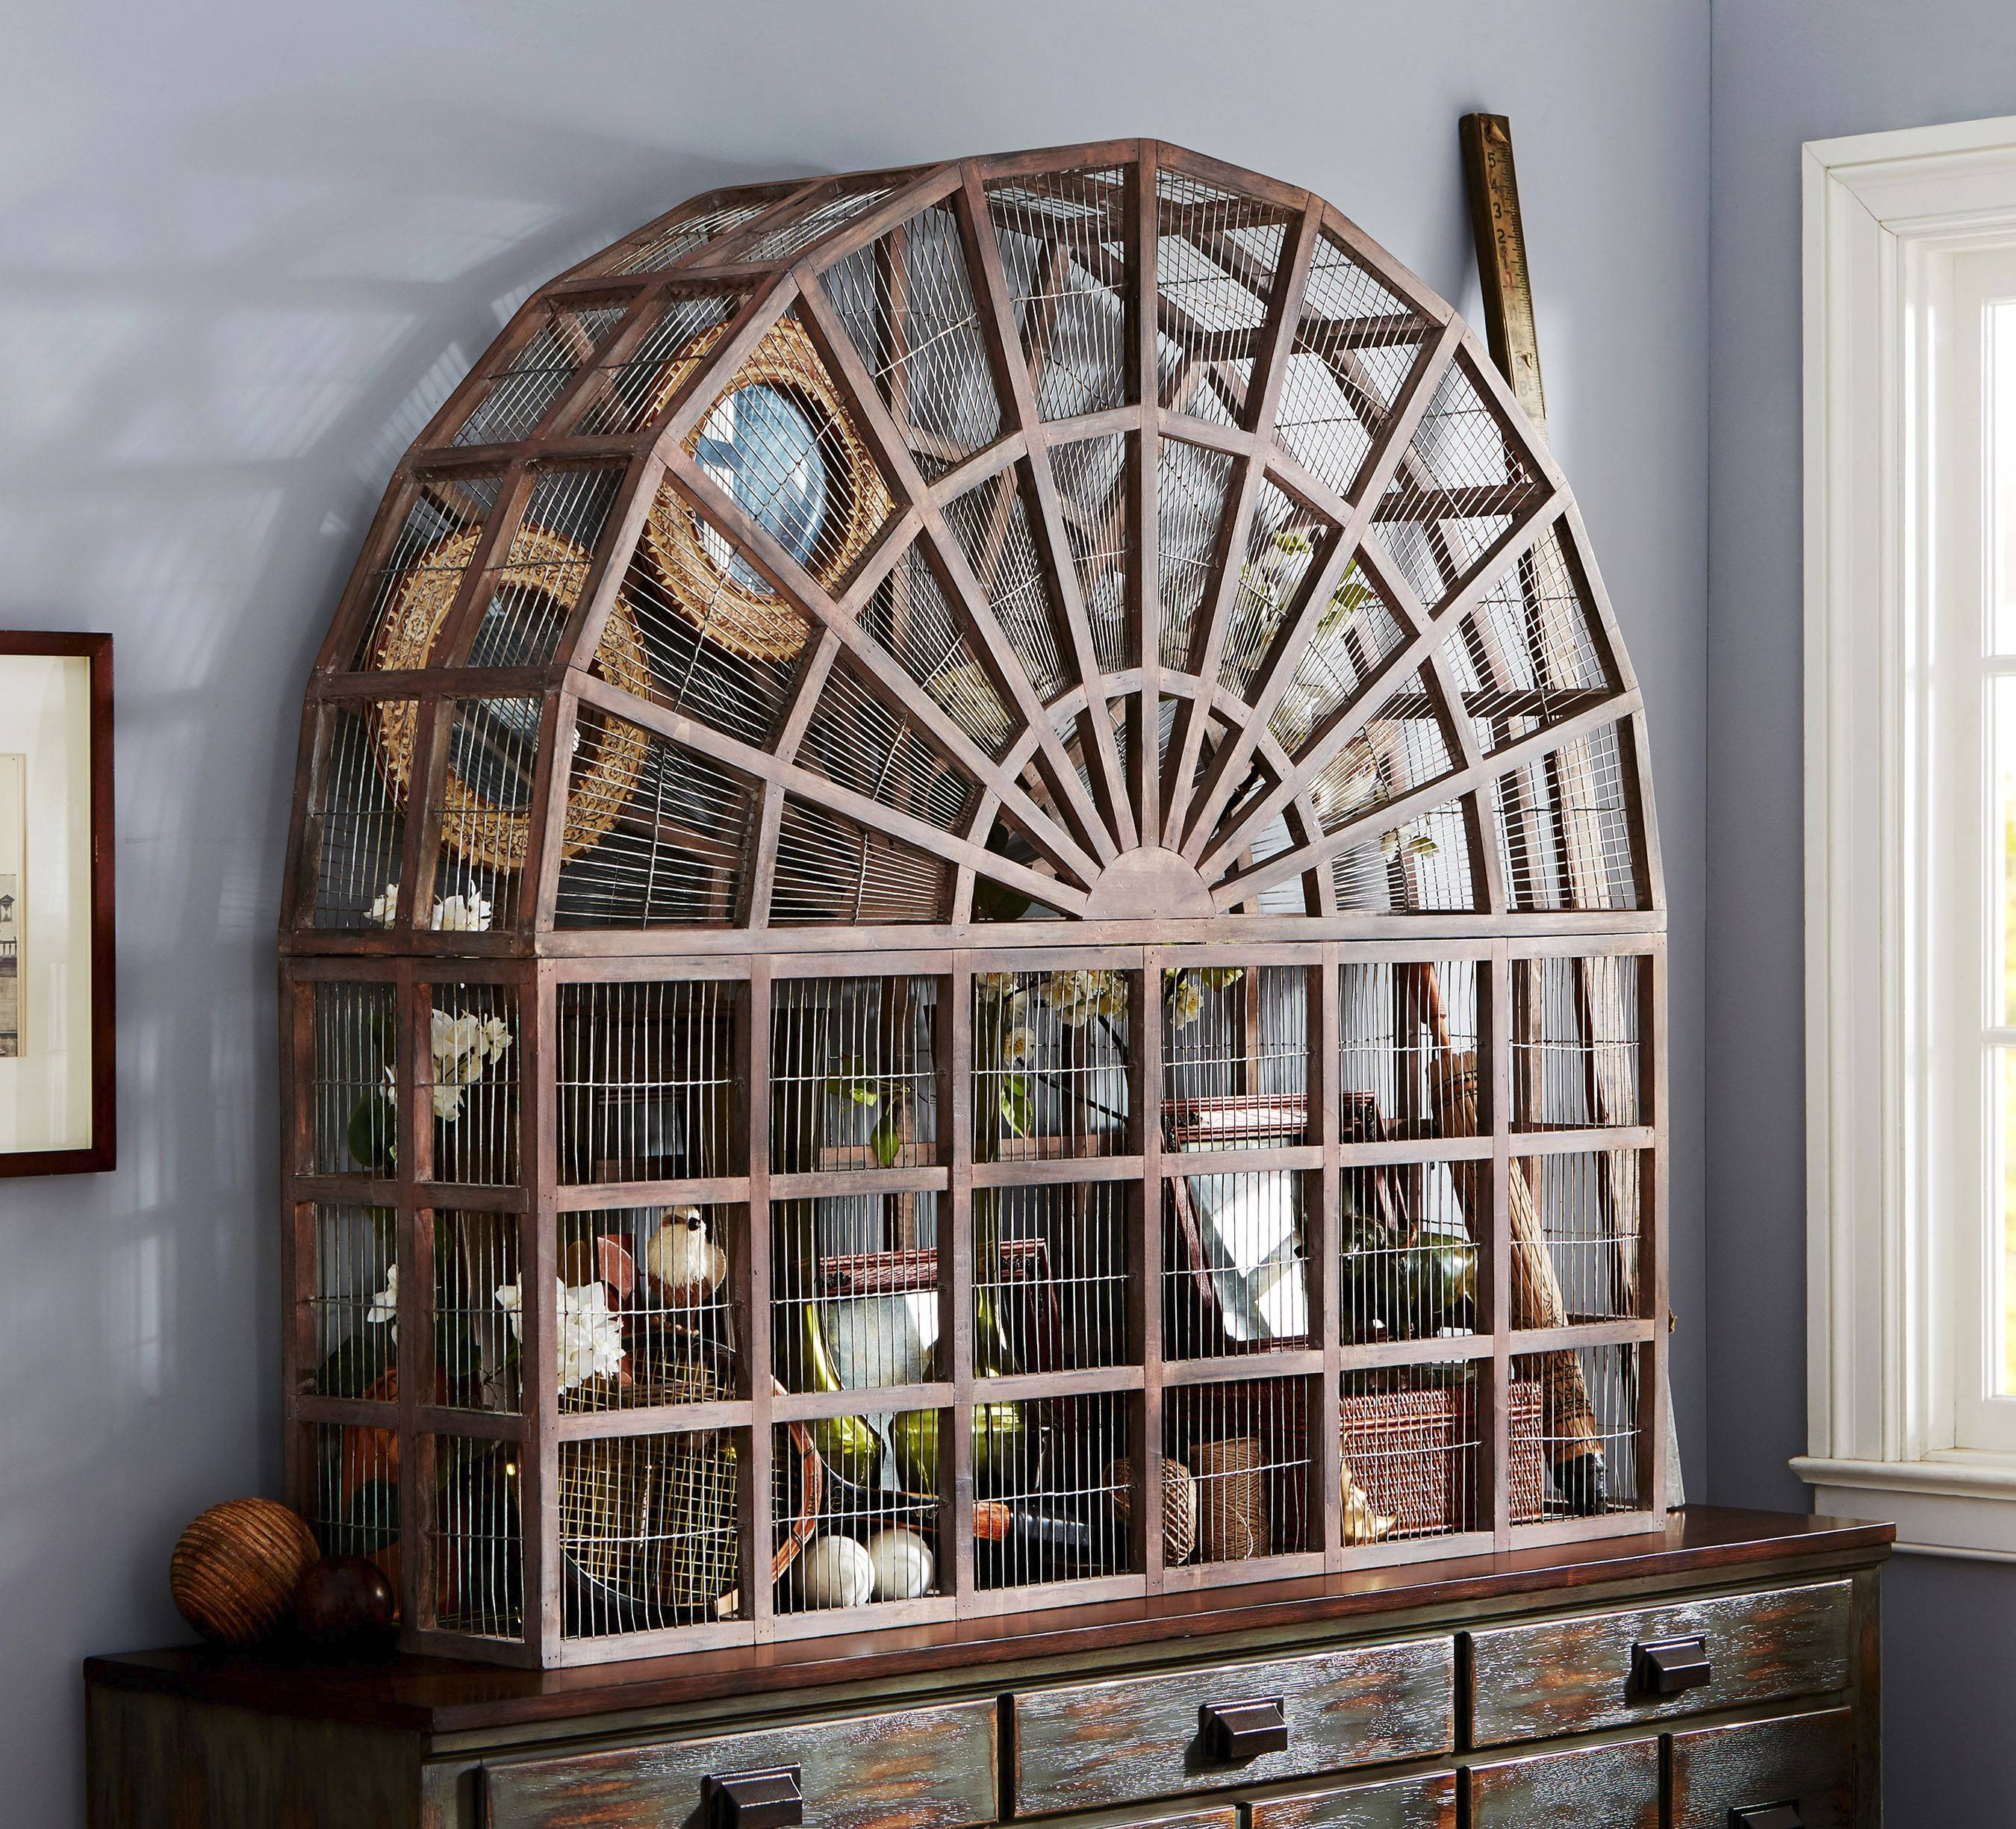 Pottery Barn's large Conservatory bird cage made of mahogany and wire is a statement piece due to its scale, and replicates similar designs of the Victorian era. It would look striking alone, or filled with elements of a personal collection, or even plants. Those drawn to 19th-century style may be happy to learn that vintage garden decor is a trend for spring and summer.